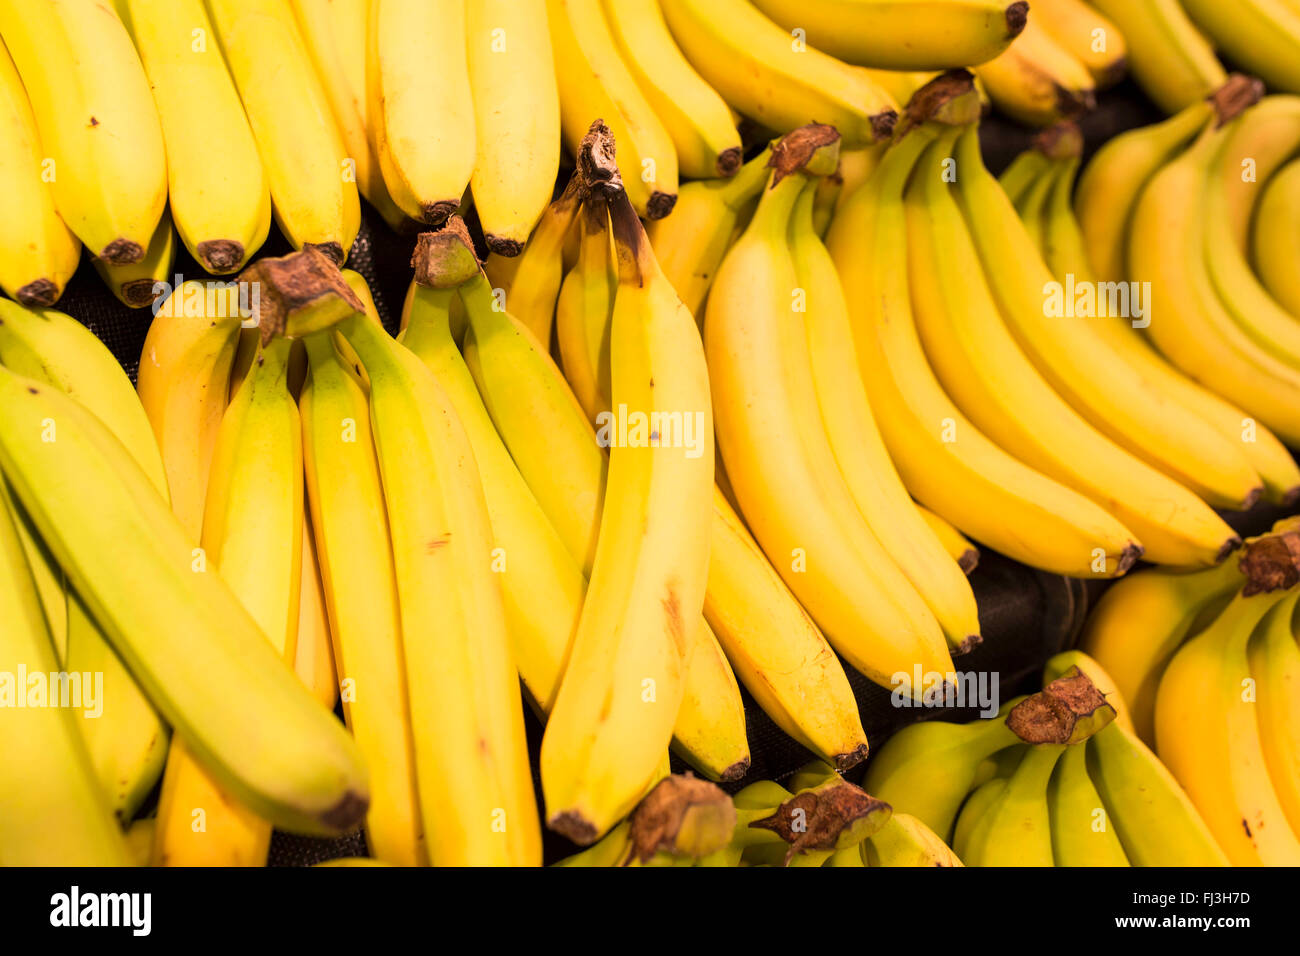 bunches of bananas in a supermarket - Stock Image